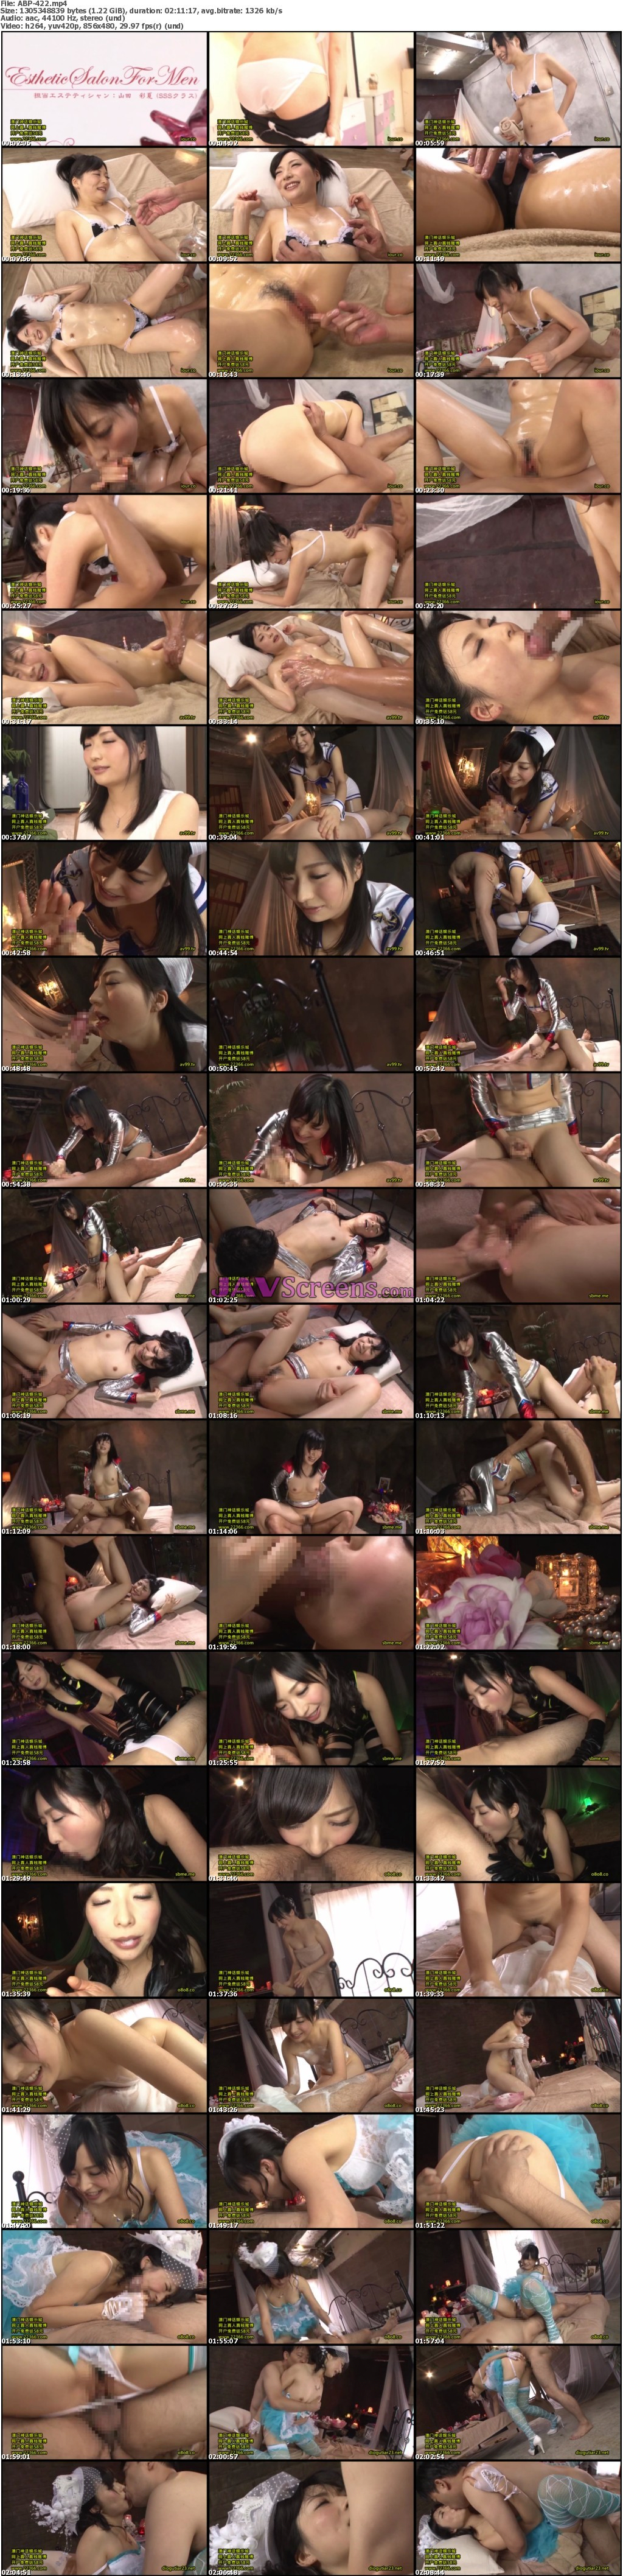 ABP-422.jpg - JAV Screenshot